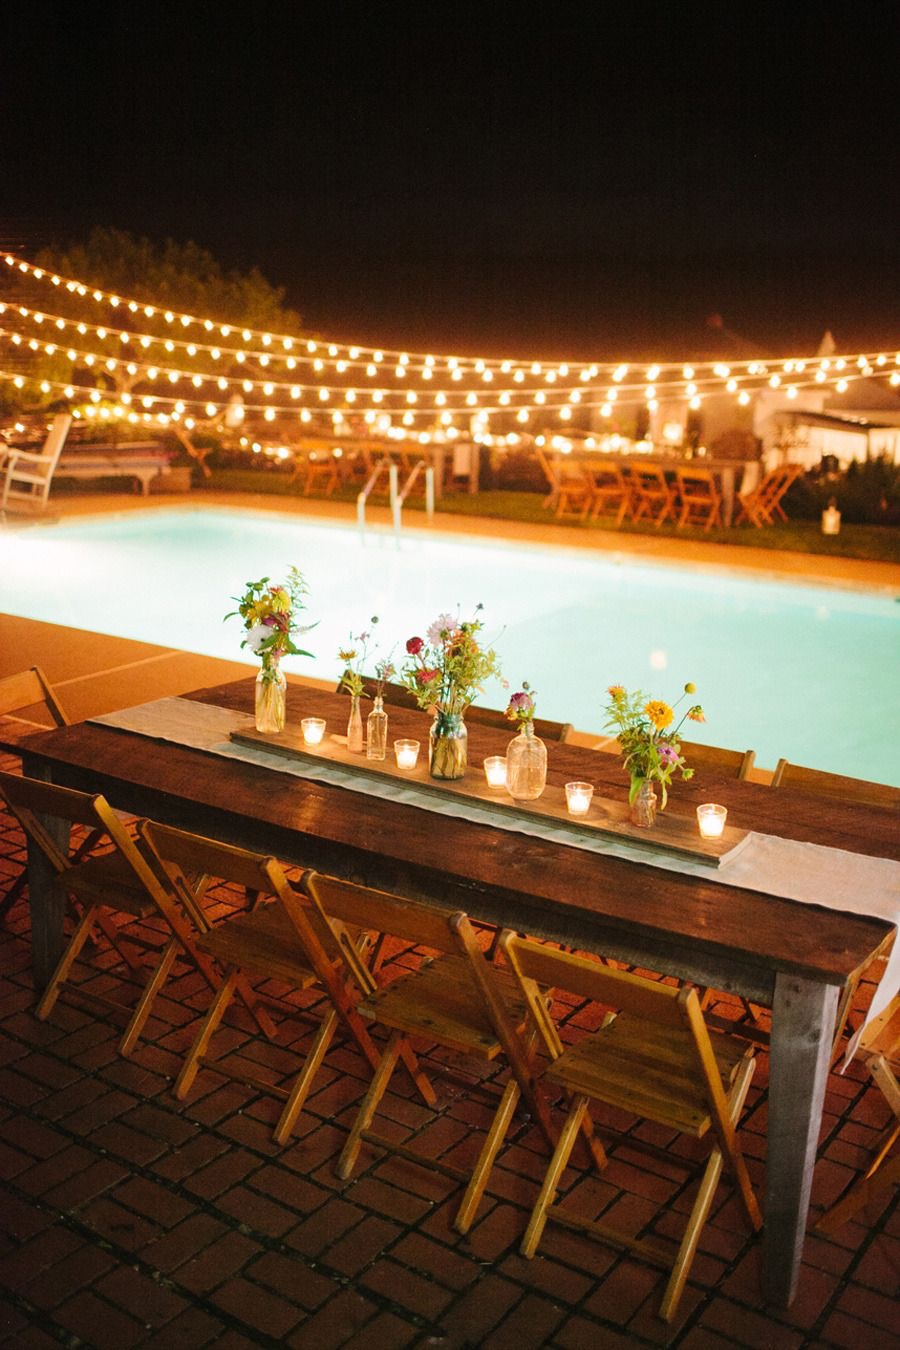 nighttime lights and table arrangement